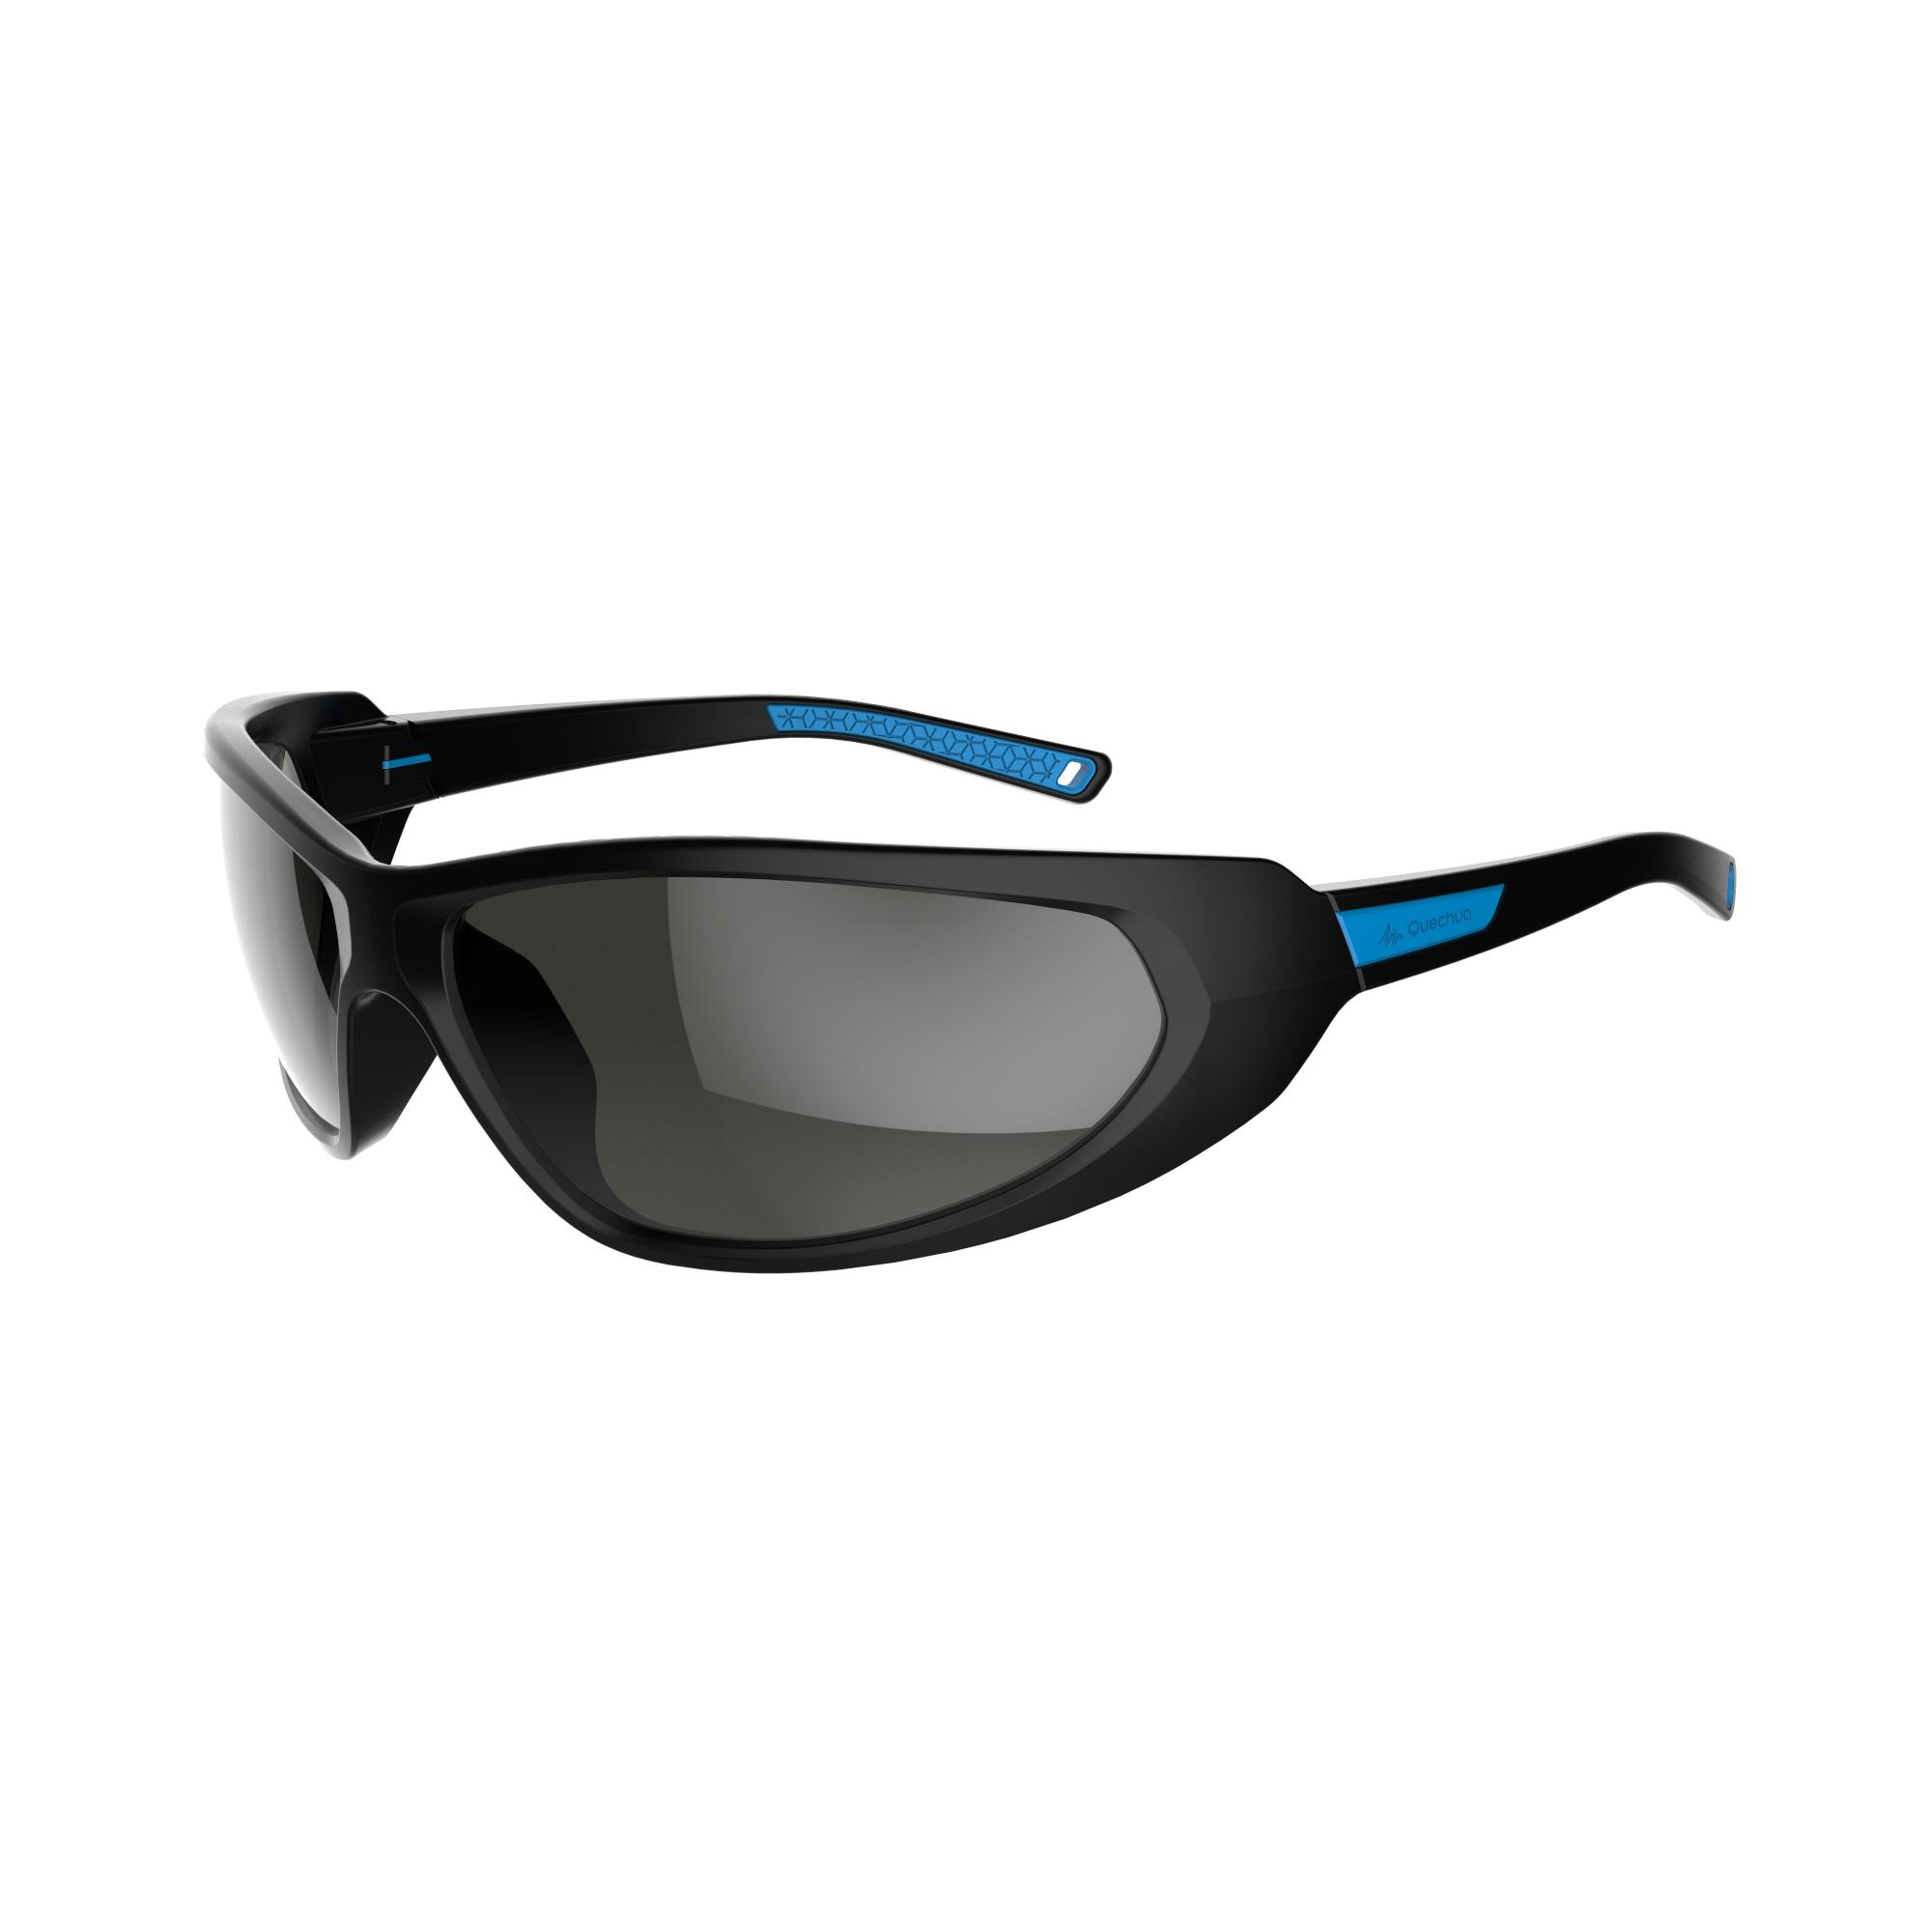 Category 4 MH 510 Adult Hiking Glasses - Black & Blue